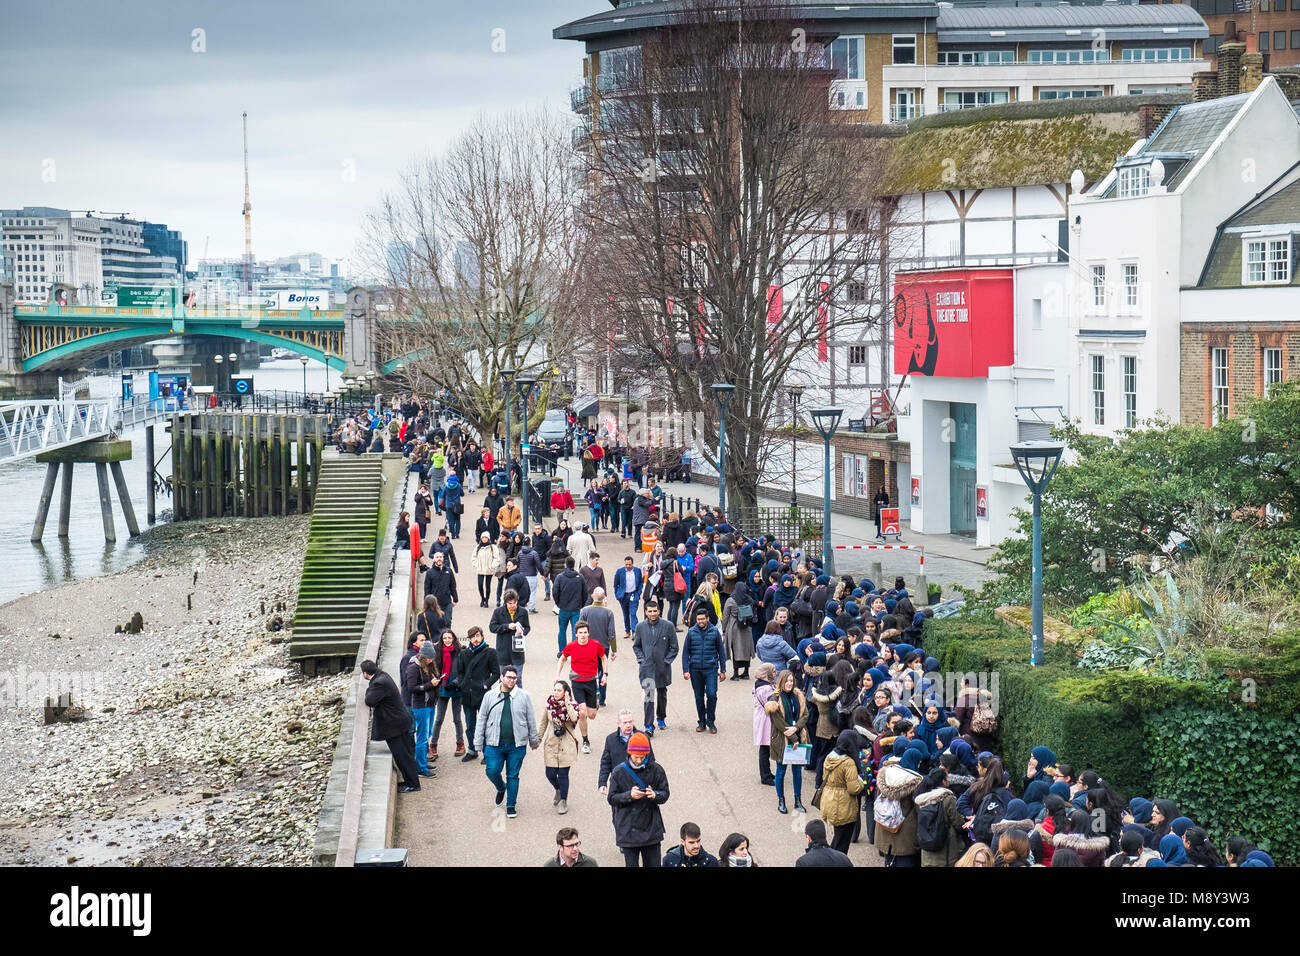 People walking, standing and waiting outside the Globe Theatre on the South Bank in London. - Stock Image